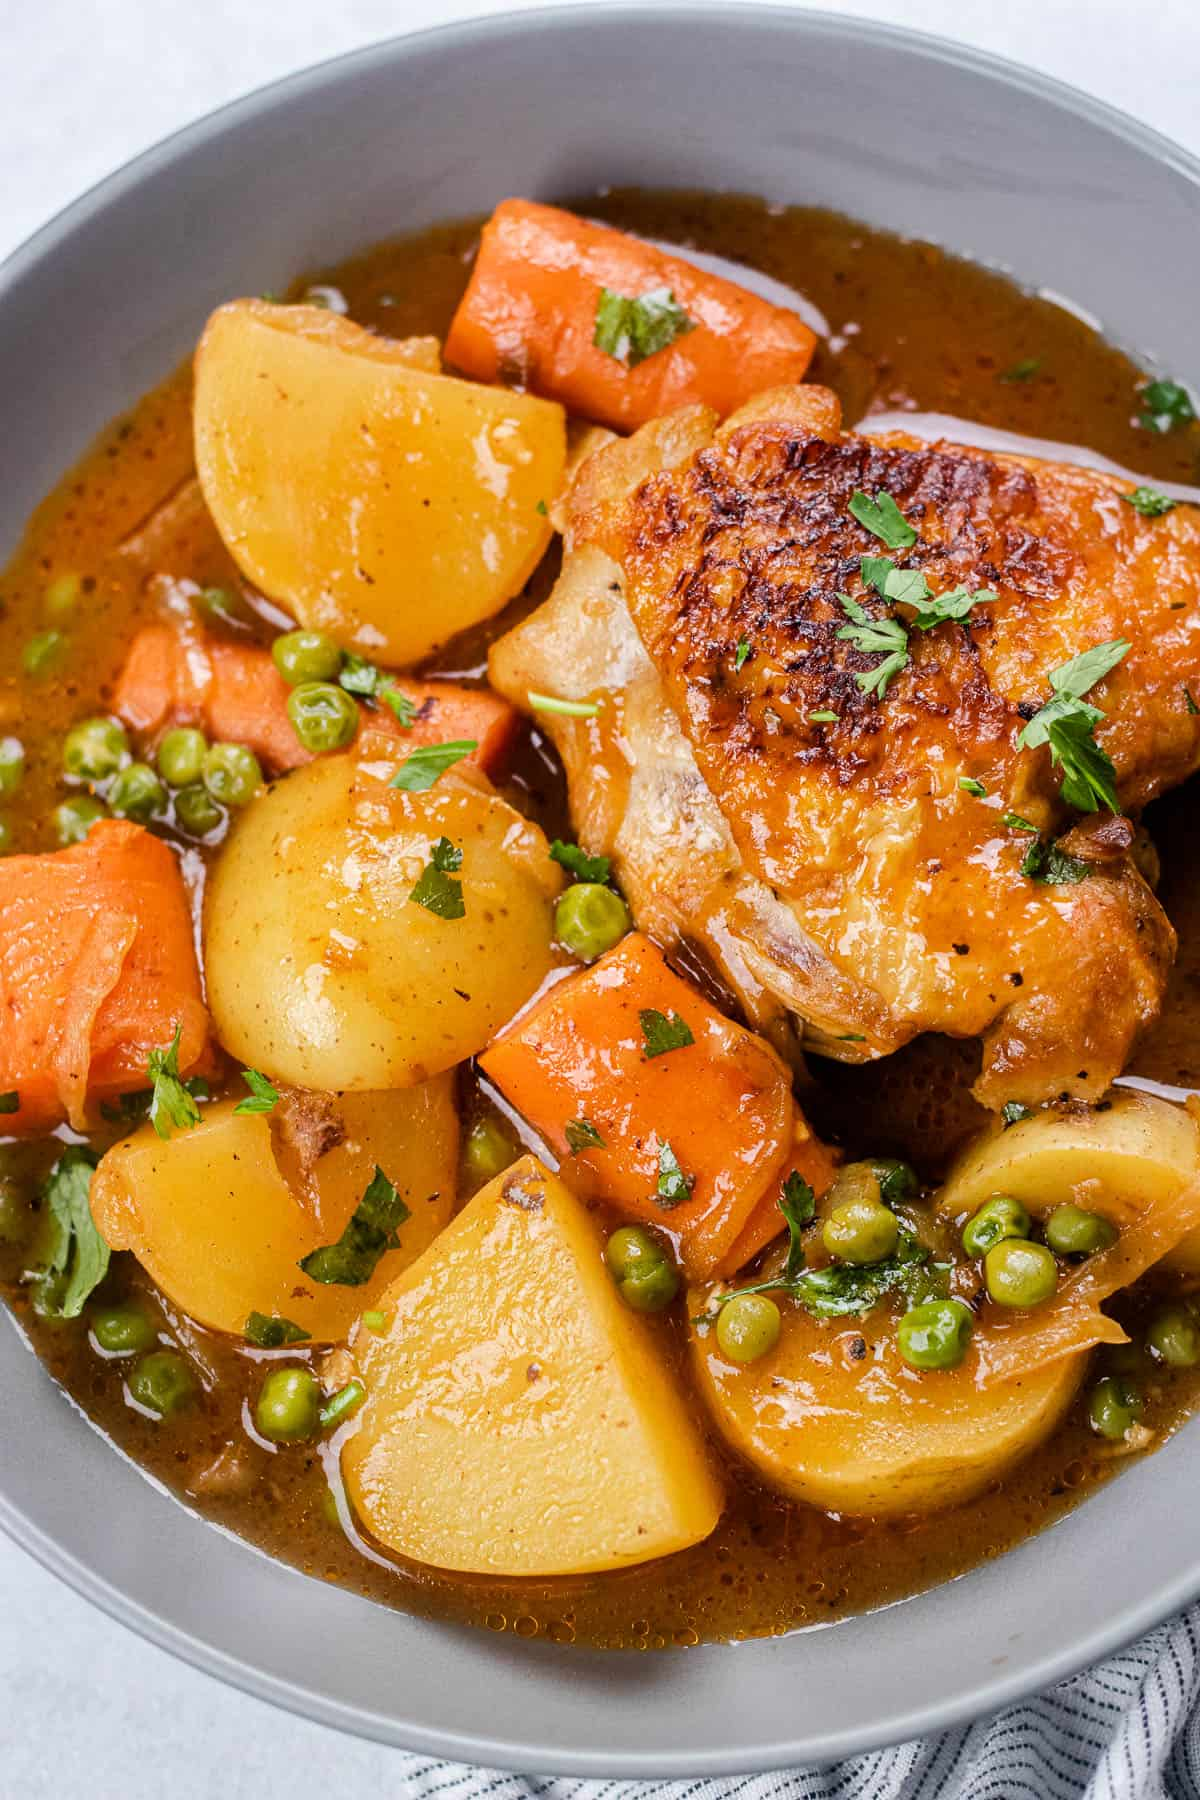 Chicken thigh with potatoes and vegetables in a grey bowl.